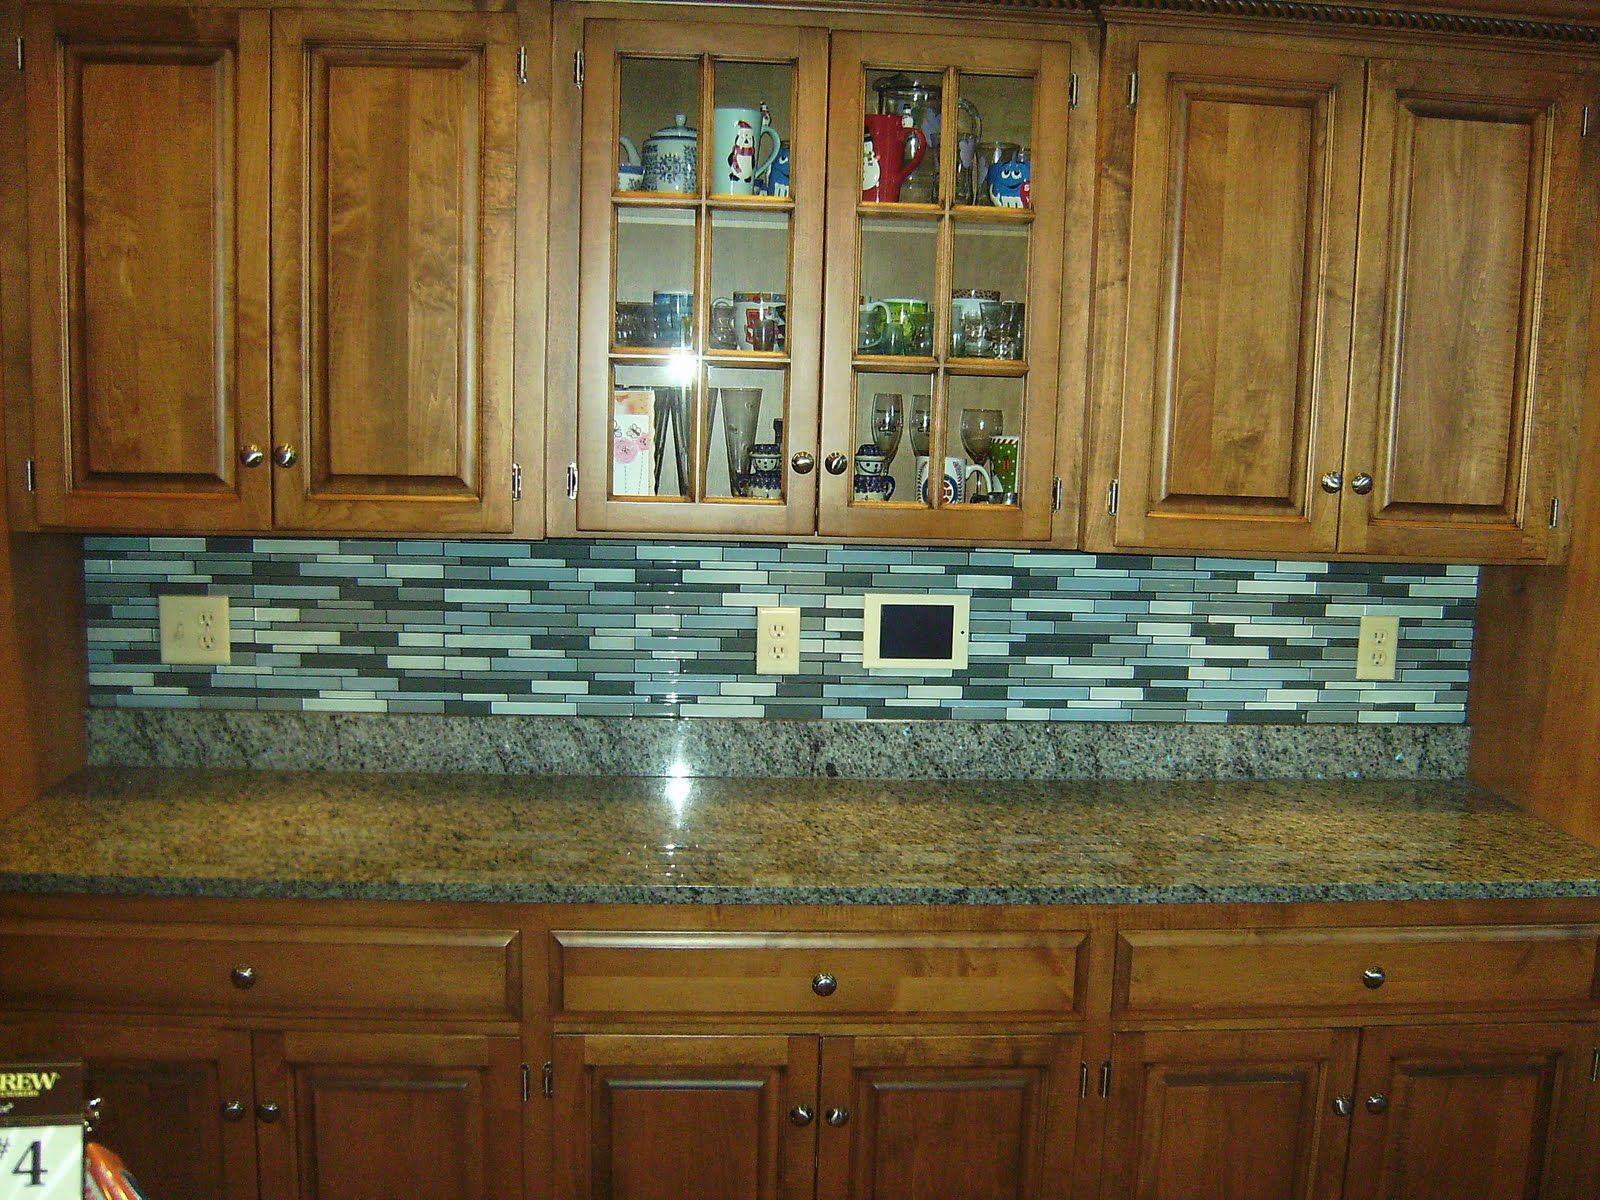 Kitchen Backsplash Glass Tile Design Ideas subway tile design mosaic 1000 Images About Tile Backsplashes Etc On Pinterest Glass Tiles Tile And Kitchen Backsplash